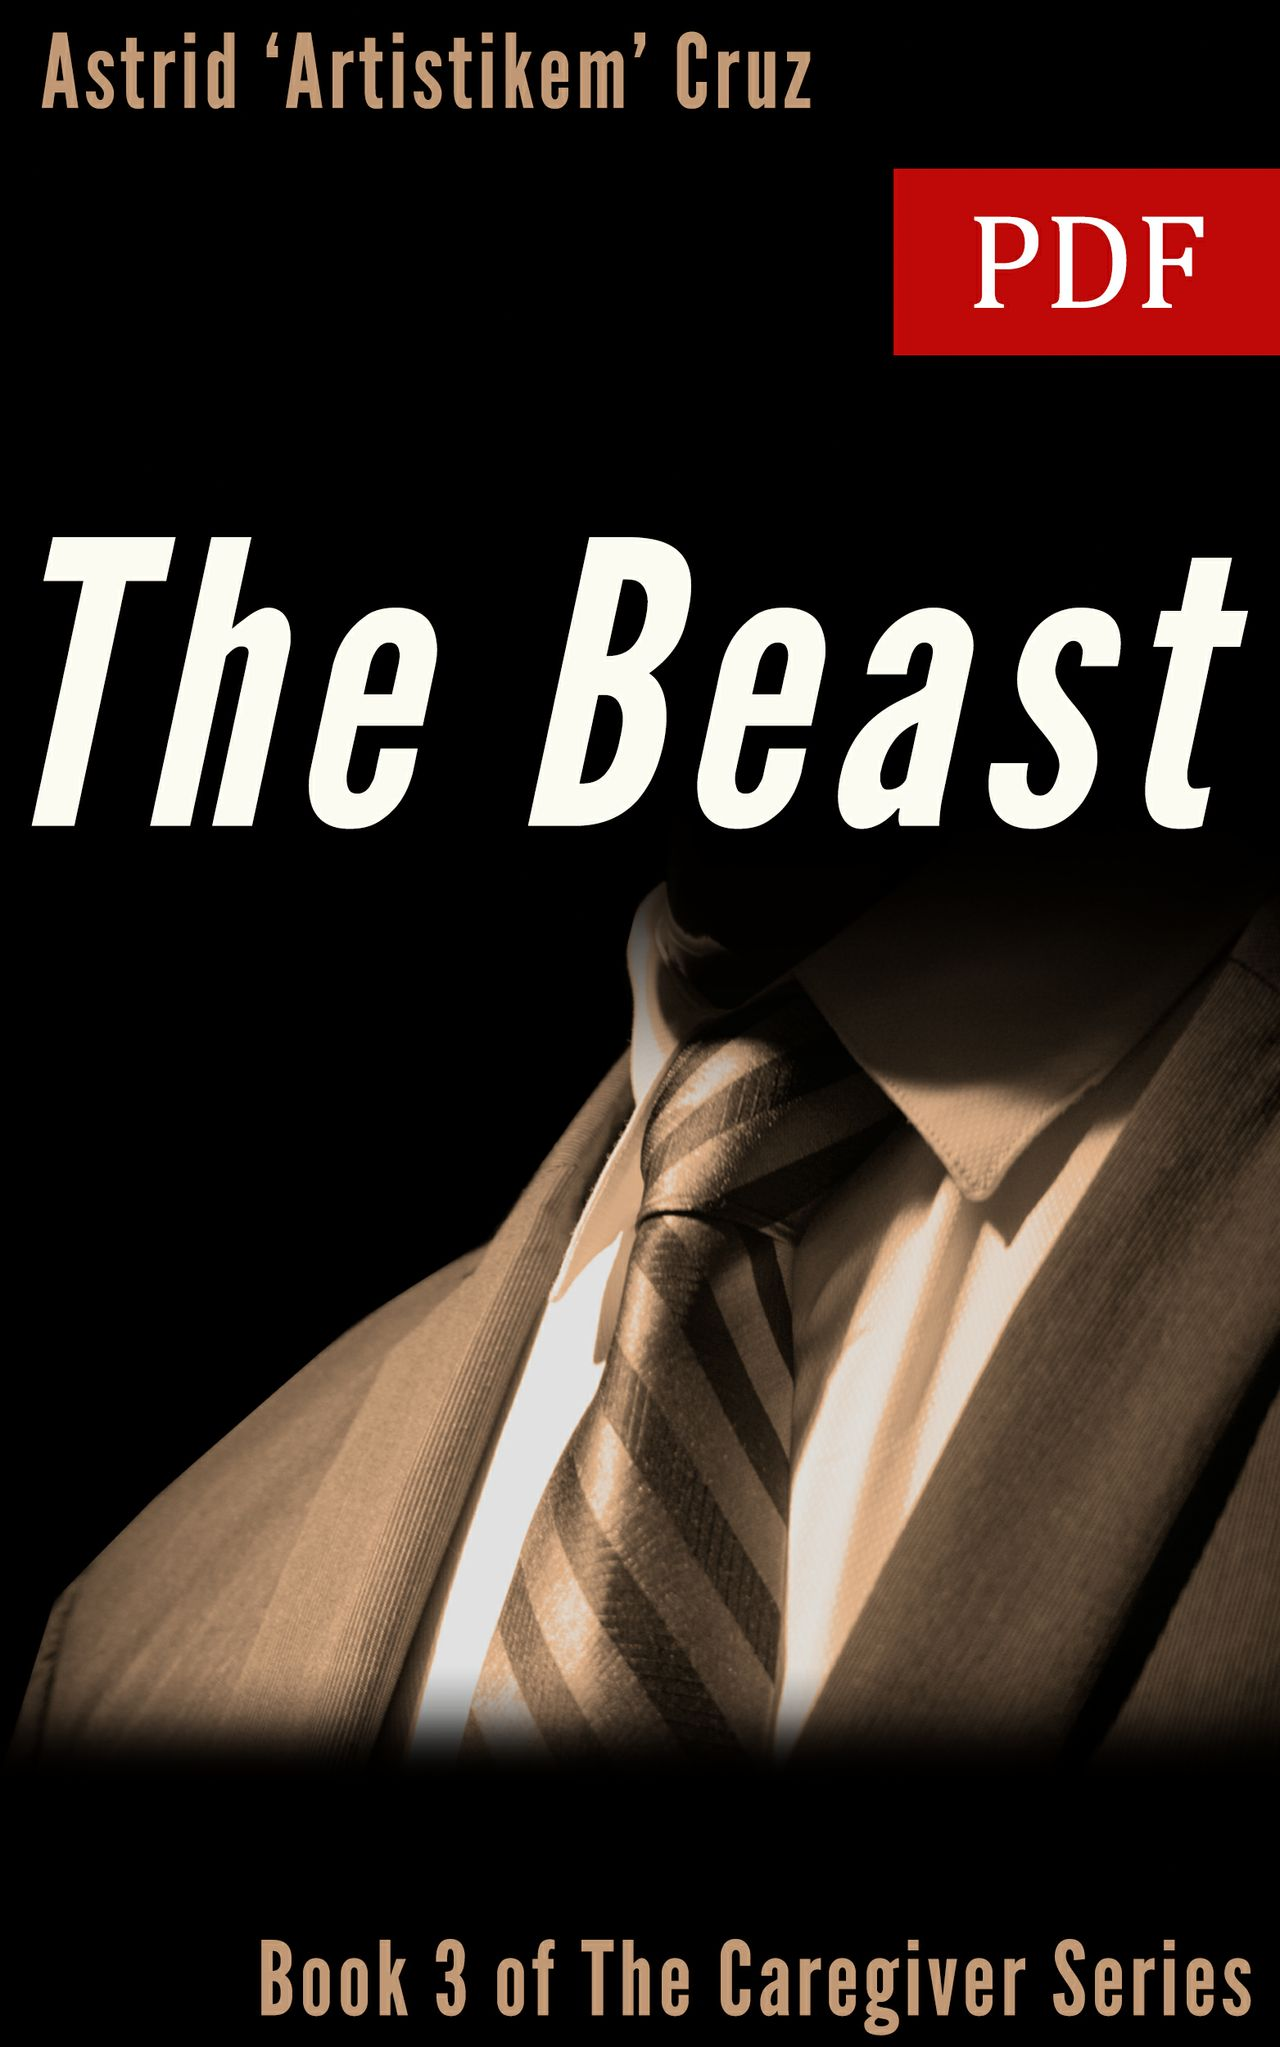 The Beast (Book 3 of The Caregiver Series) - PDF